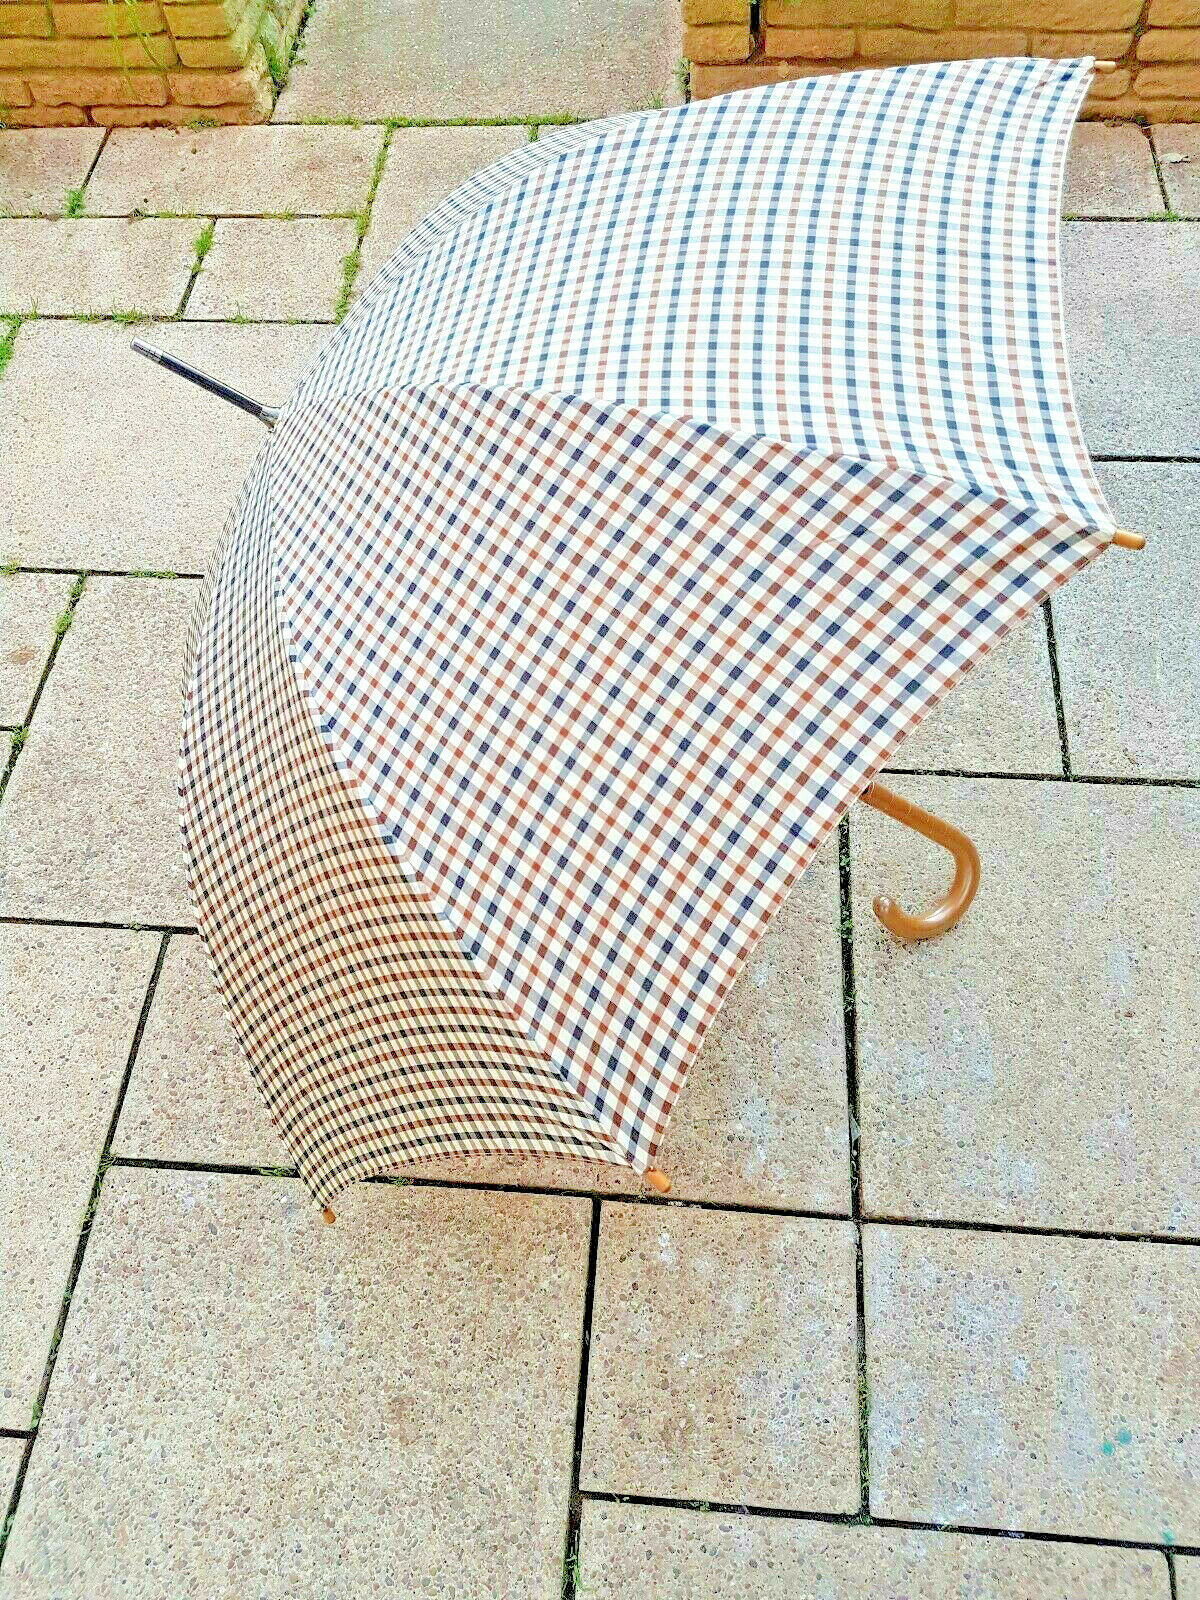 <<SEE VIDEO>> Retro CLASSIC CANES-Smoked Tartan Kanopy Umbrella With Cover NEW